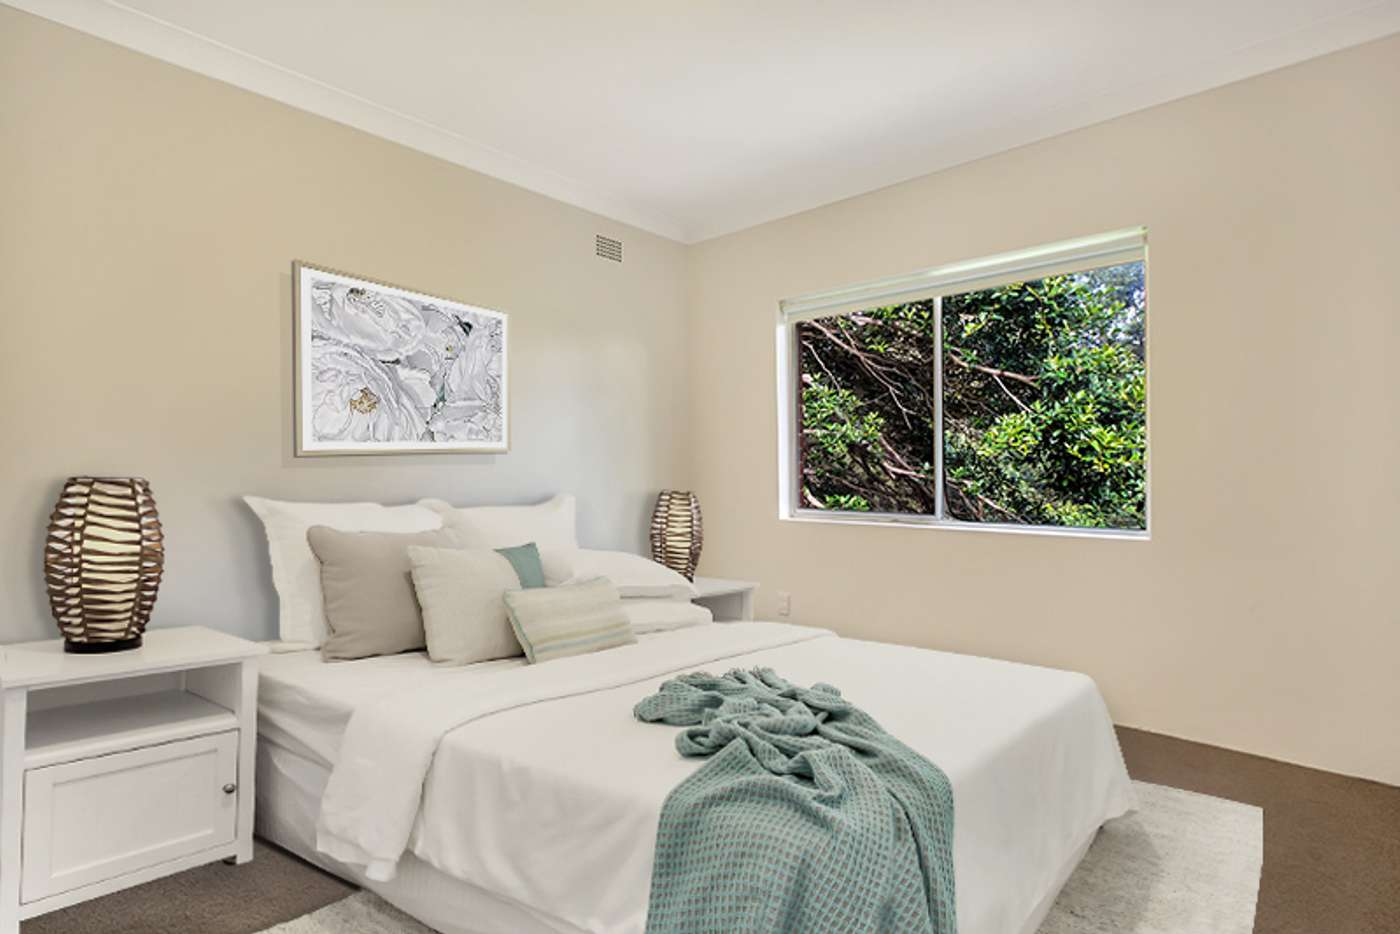 Main view of Homely apartment listing, 10/1-3 Helen Street, Lane Cove North NSW 2066